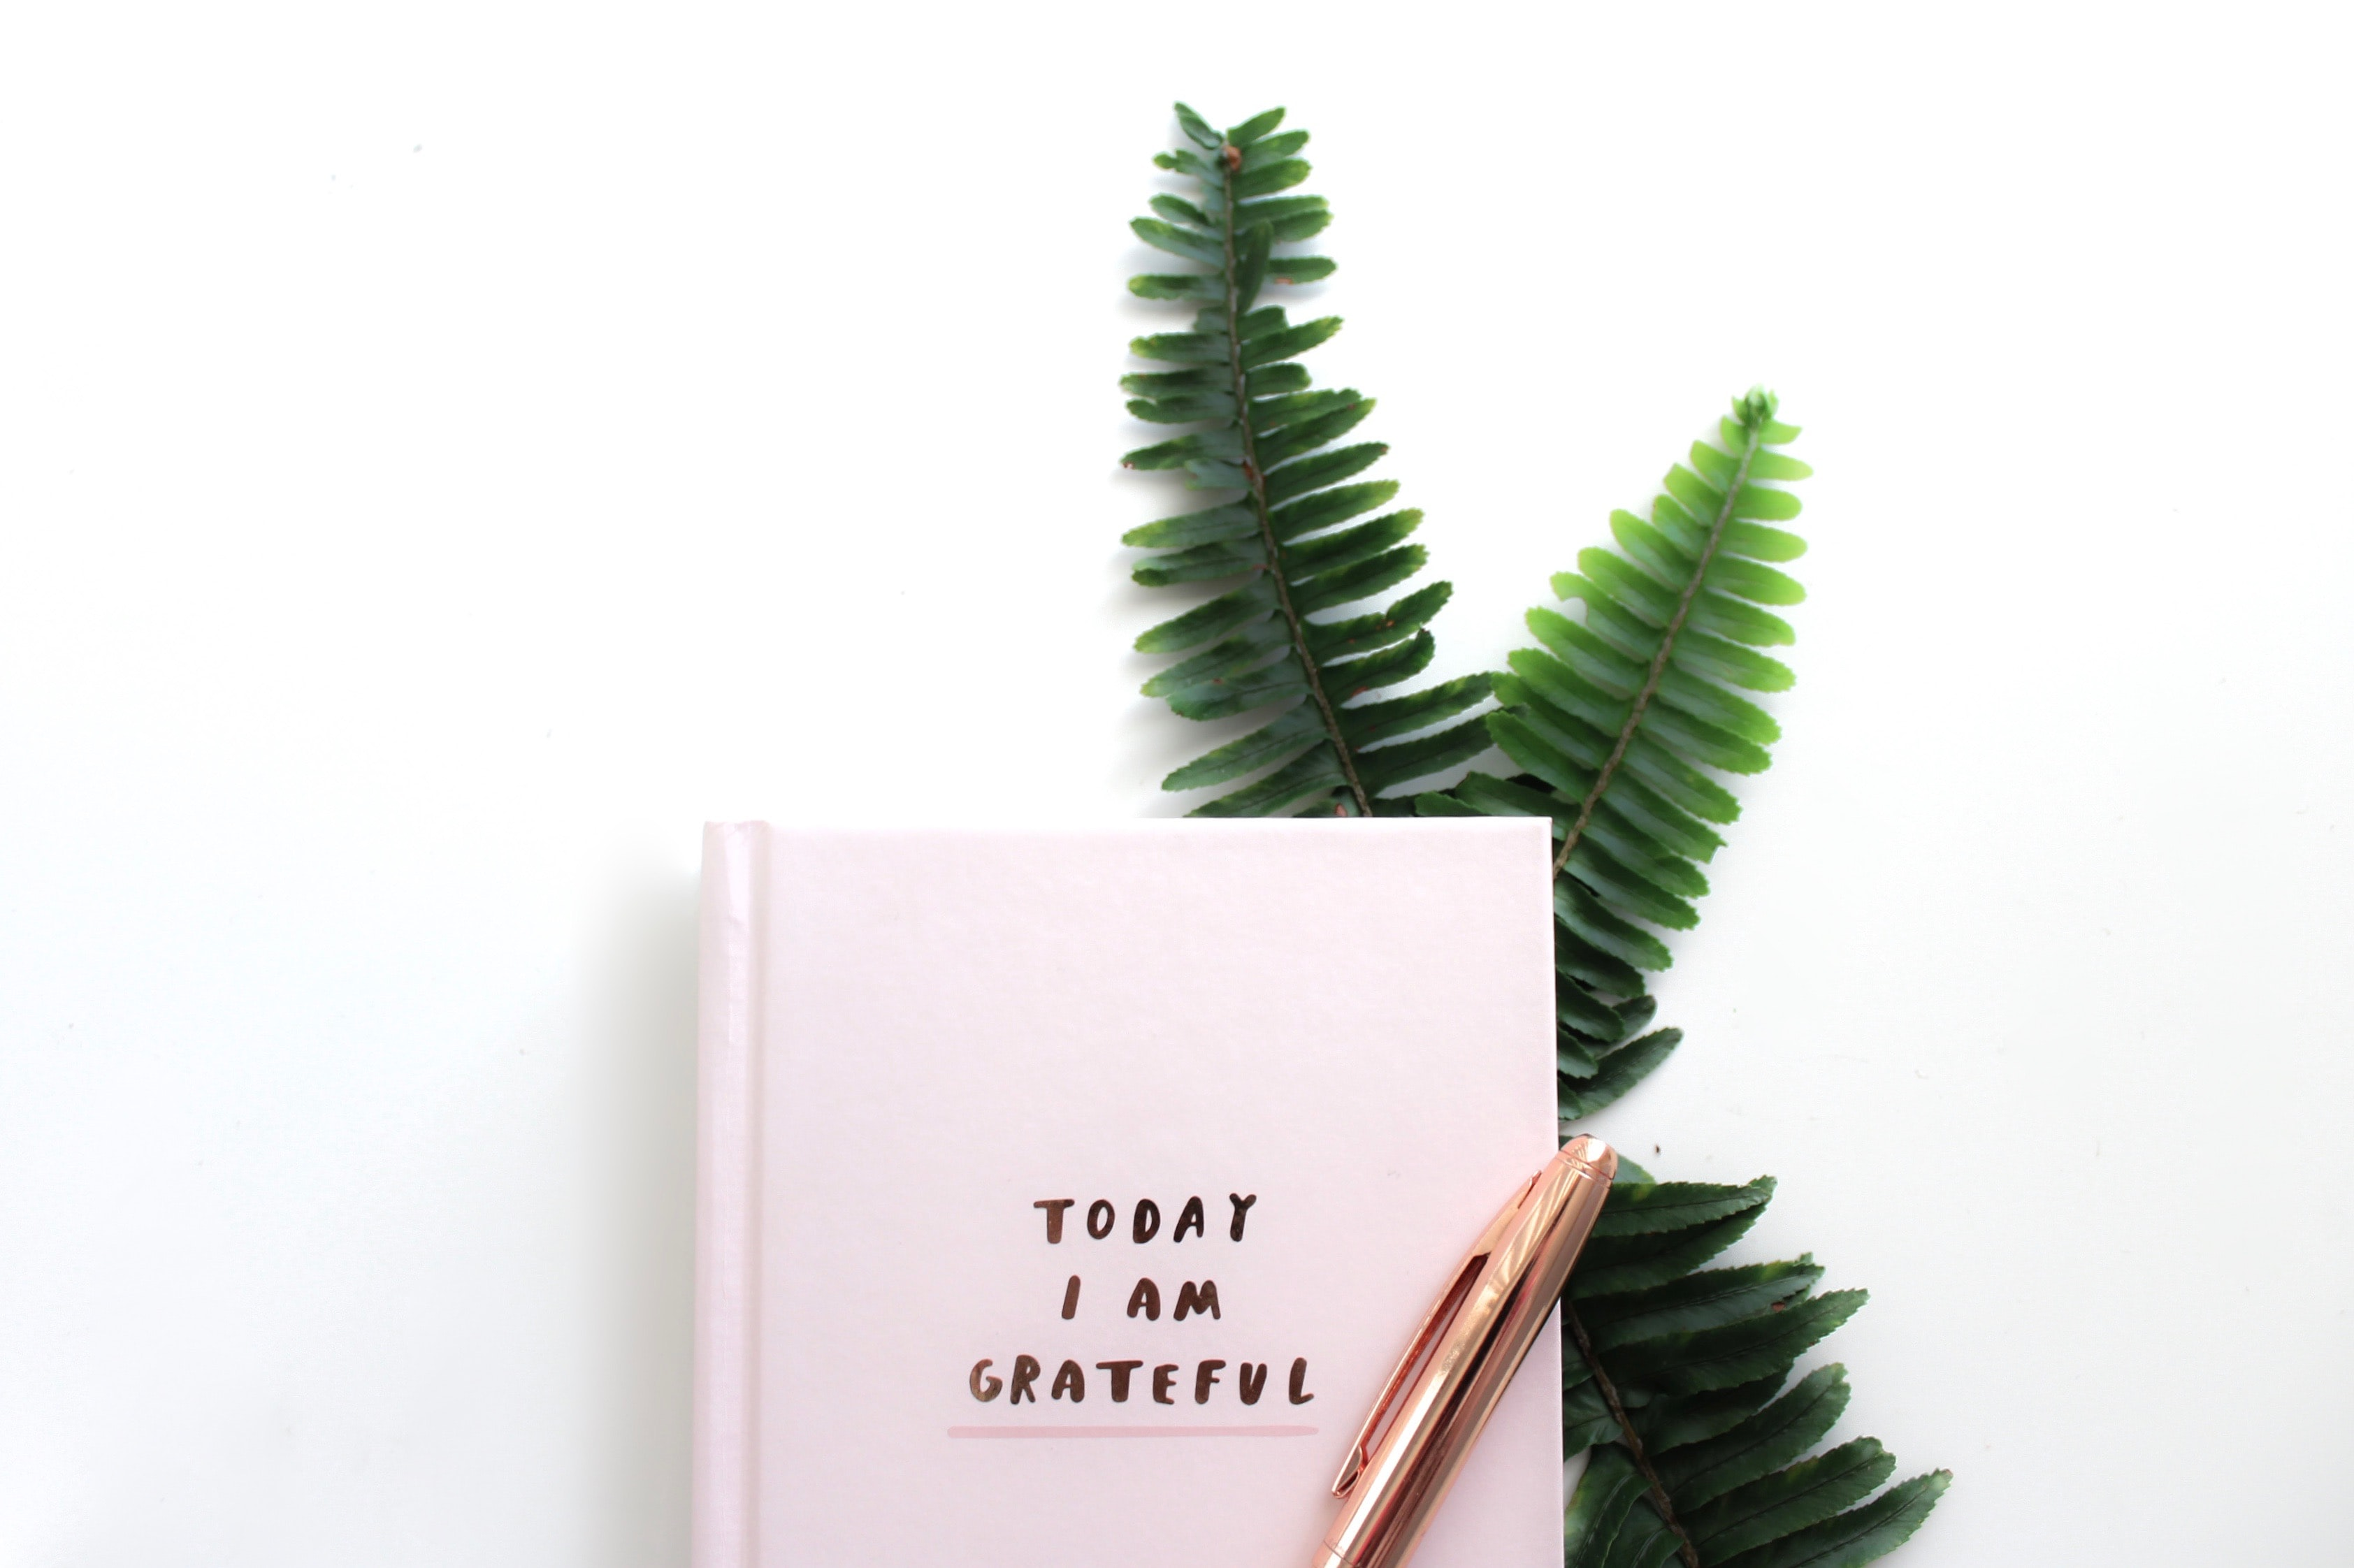 7-ideas-for-your-gratitude-journal